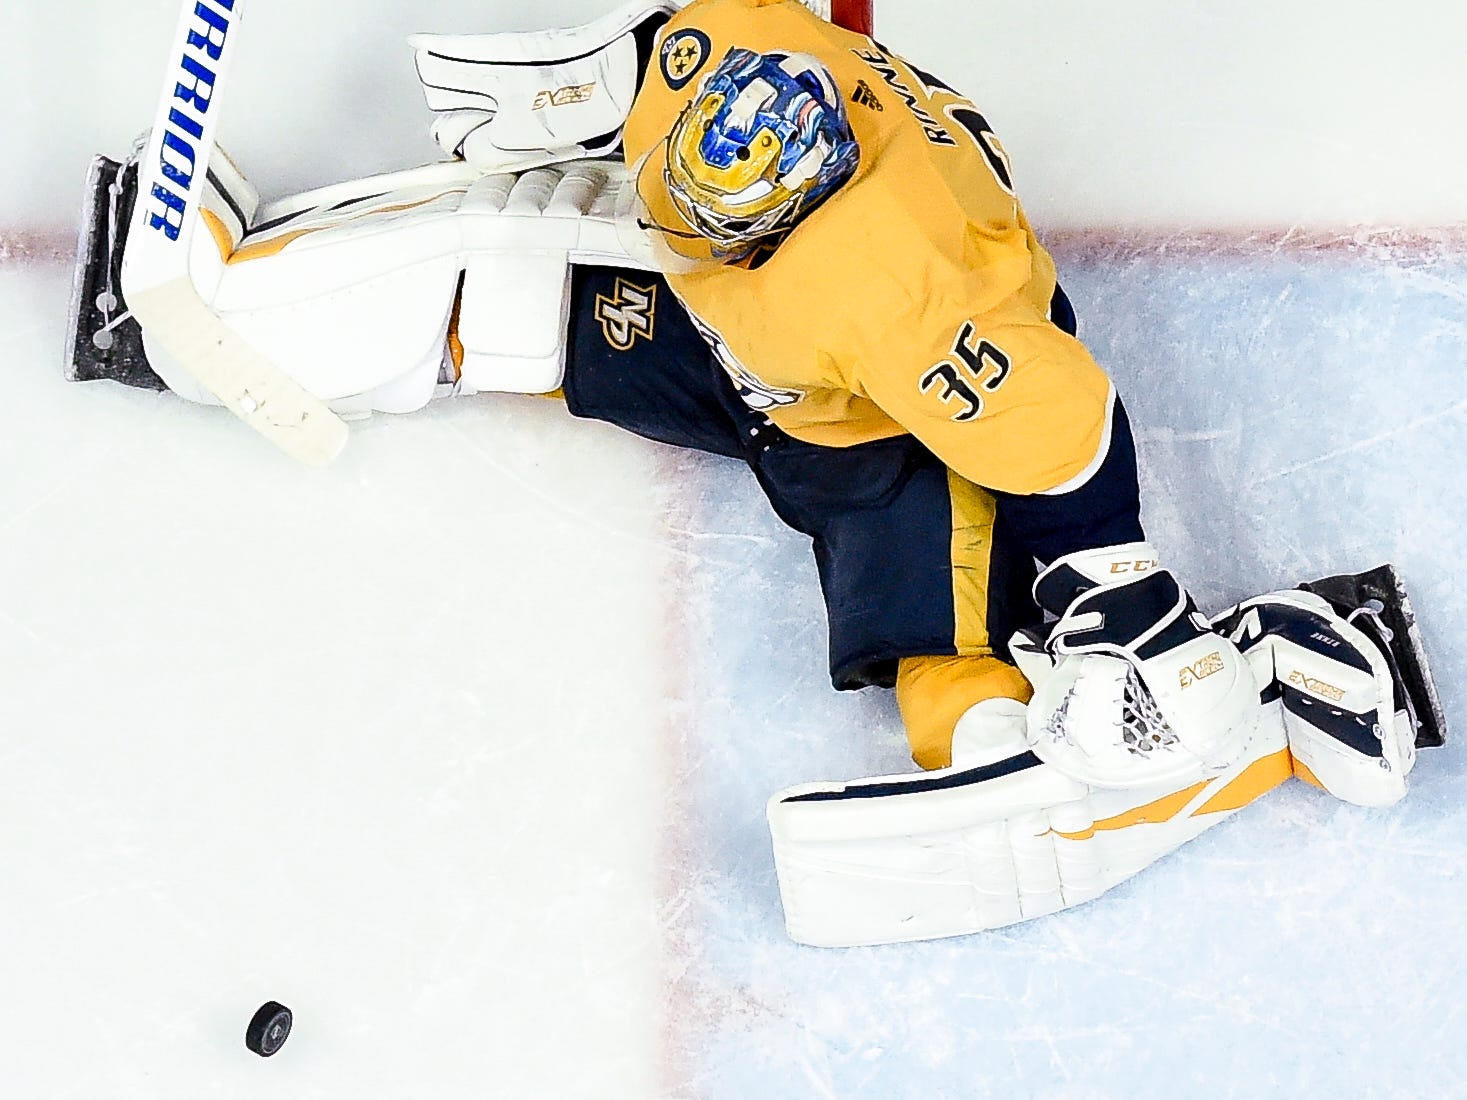 Nashville Predators goaltender Pekka Rinne (35) loses his stick while defending against an Arizona Coyotes shot during the third period at Bridgestone Arena in Nashville, Tenn., Thursday, Nov. 29, 2018.